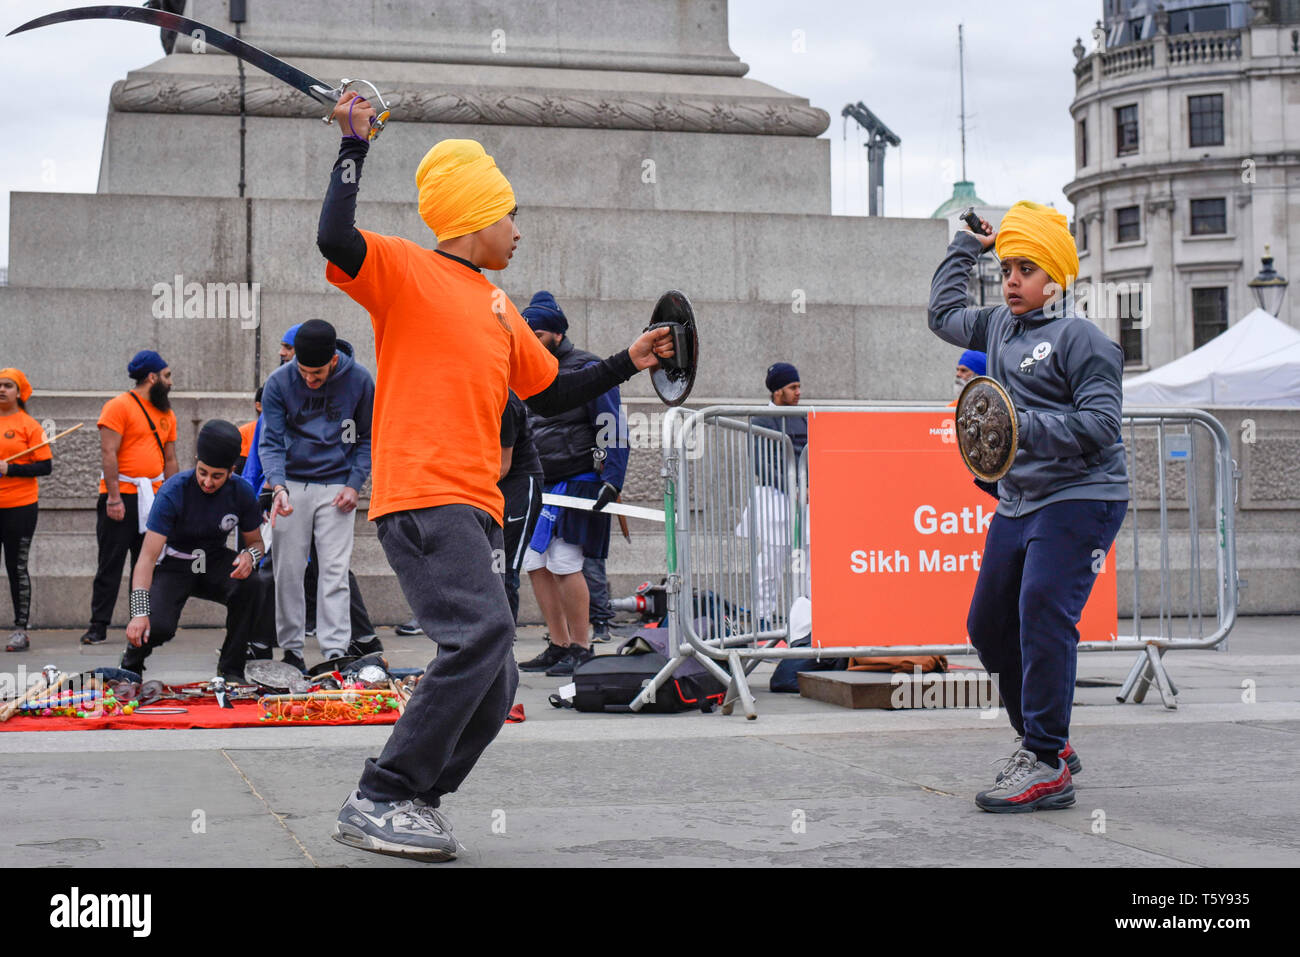 London, UK.  27 April 2019.  Young men perform Gatka, Sikh martial arts, during the festival of Vaisakhi in Trafalgar Square, hosted by the Mayor of London.  For Sikhs and Punjabis, the festival celebrates the spring harvest and commemorates the founding of the Khalsa community over 300 years ago.   Credit: Stephen Chung / Alamy Live News - Stock Image